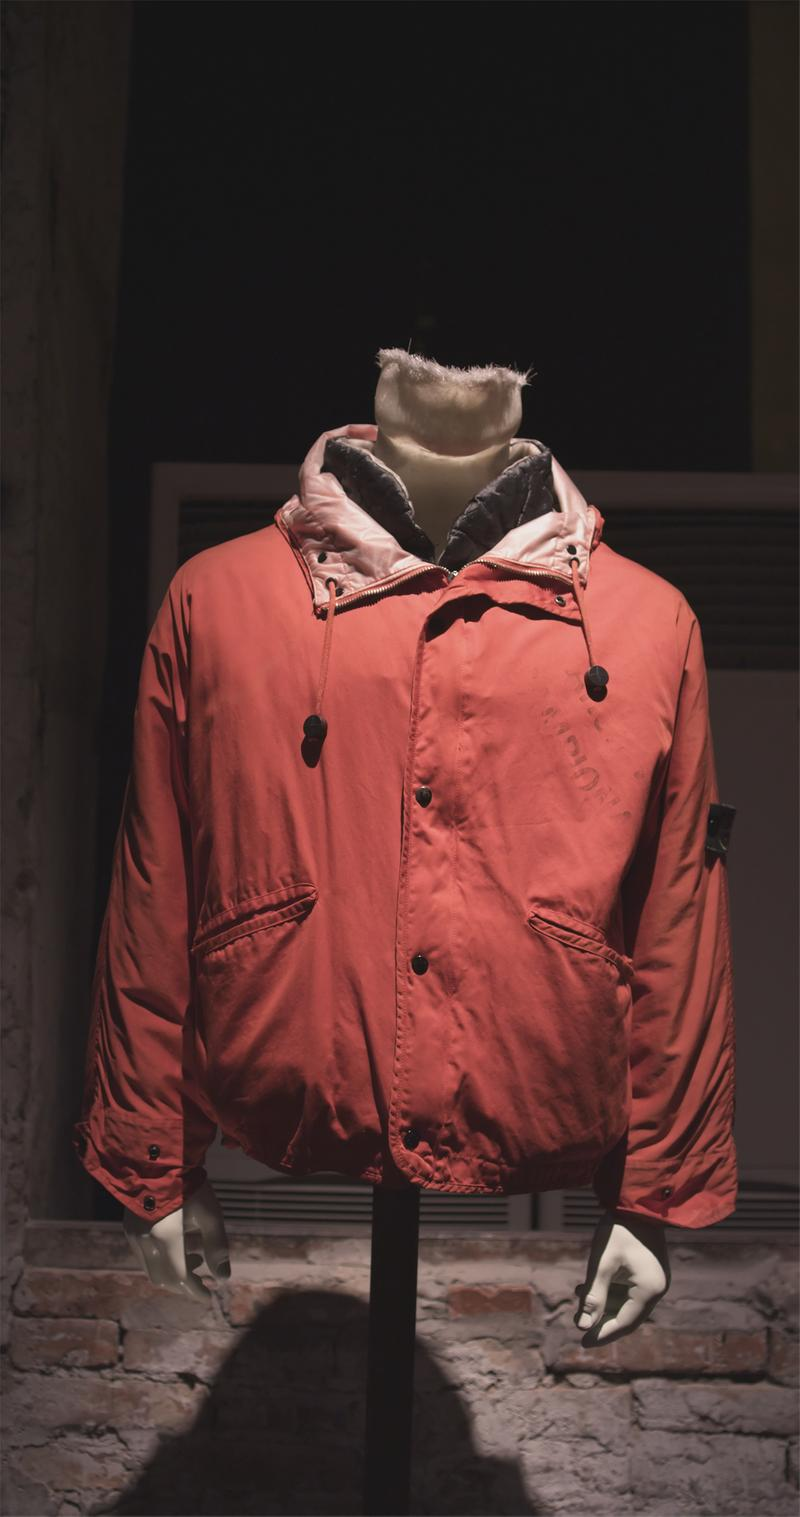 Red jacket with drawstrings, button closure, and faded lettering on left chest, displayed on mannequin bust